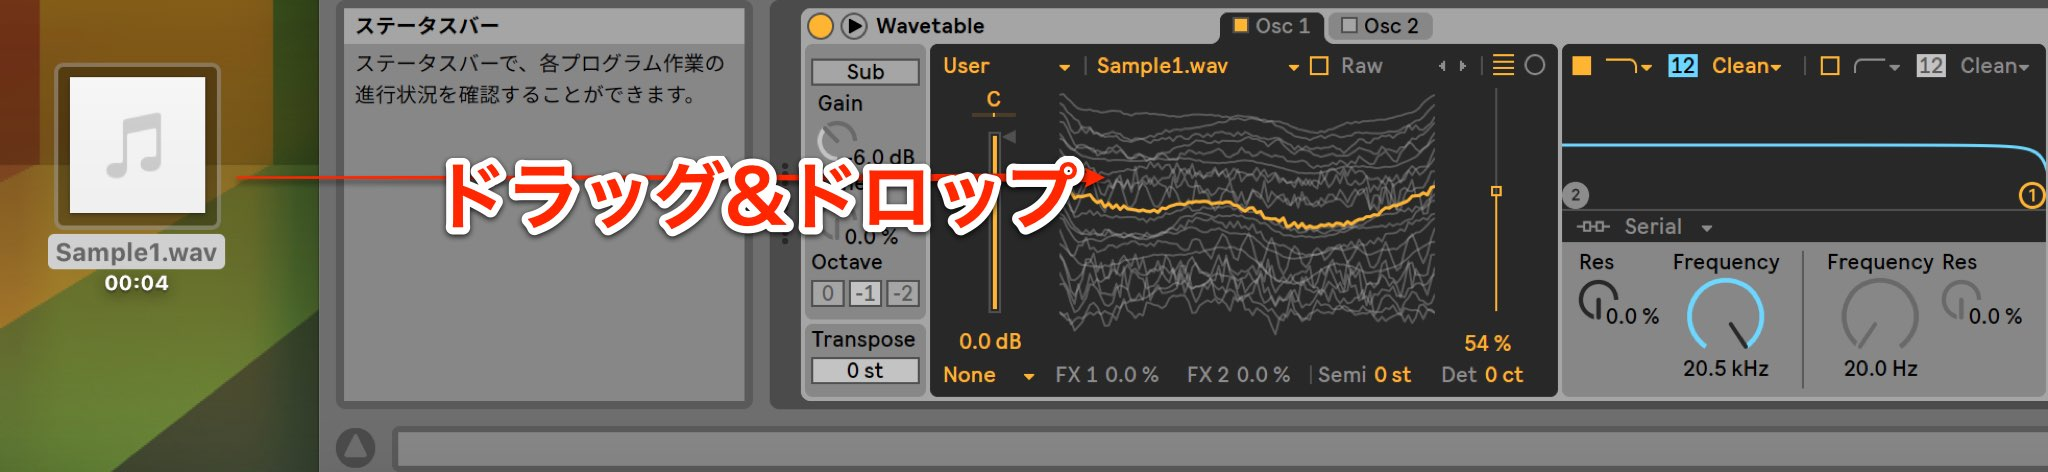 WaveTable